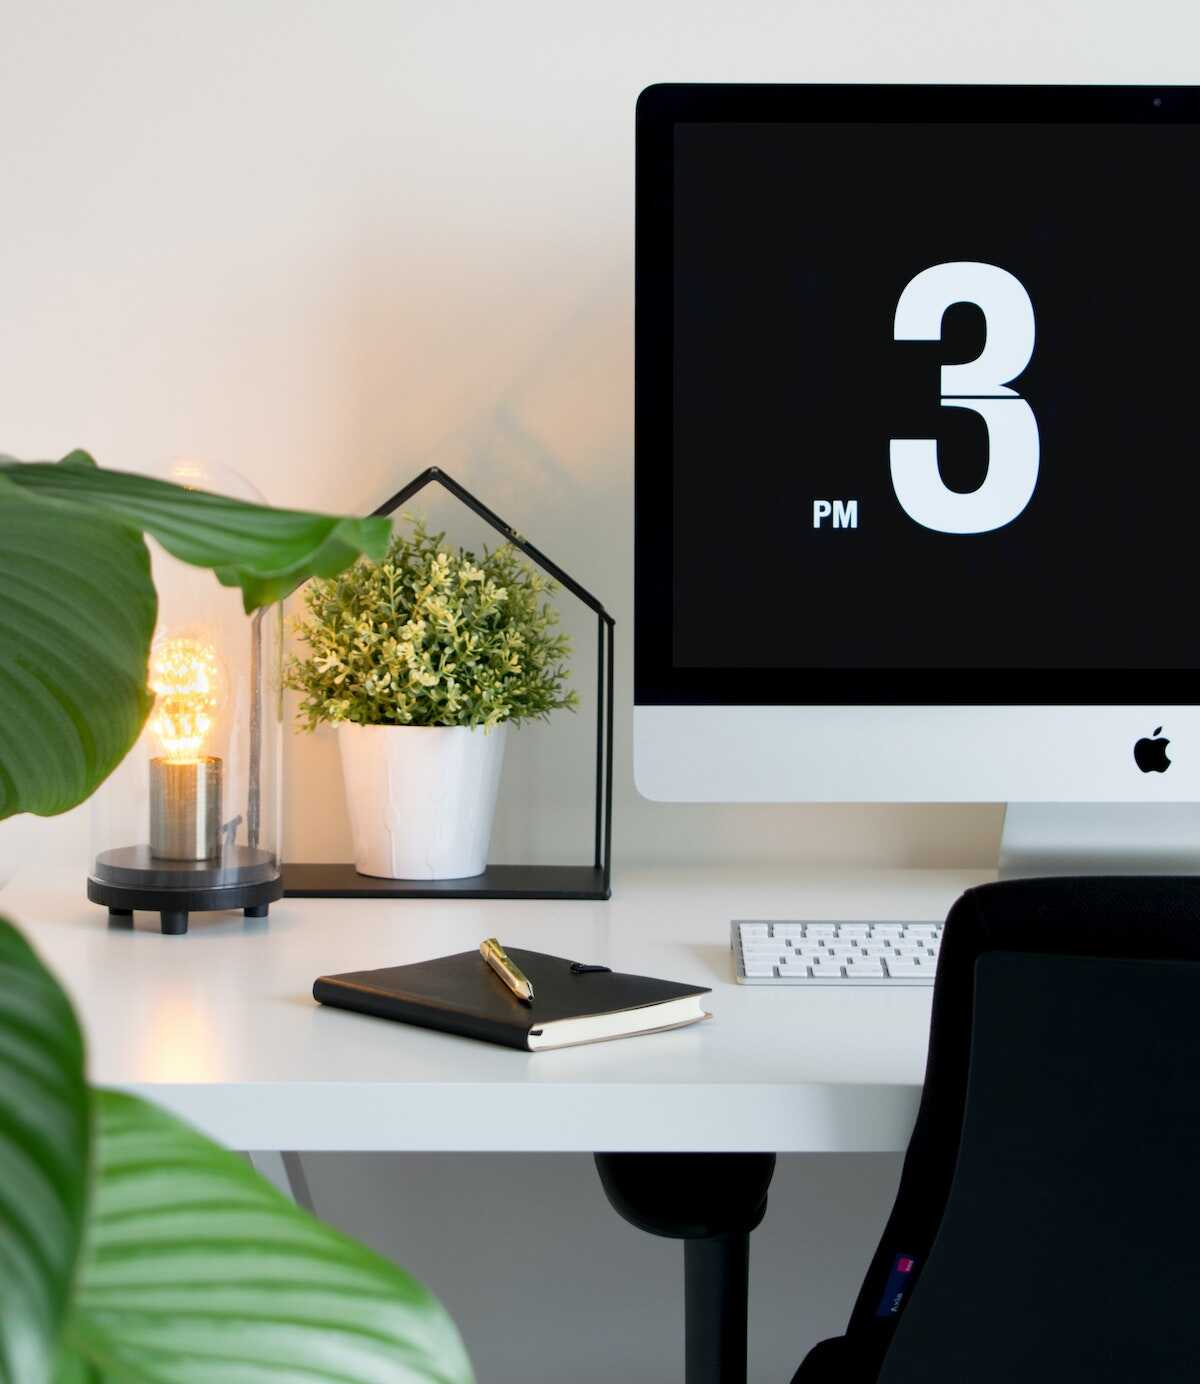 Home office desk featuring an Apple iMac